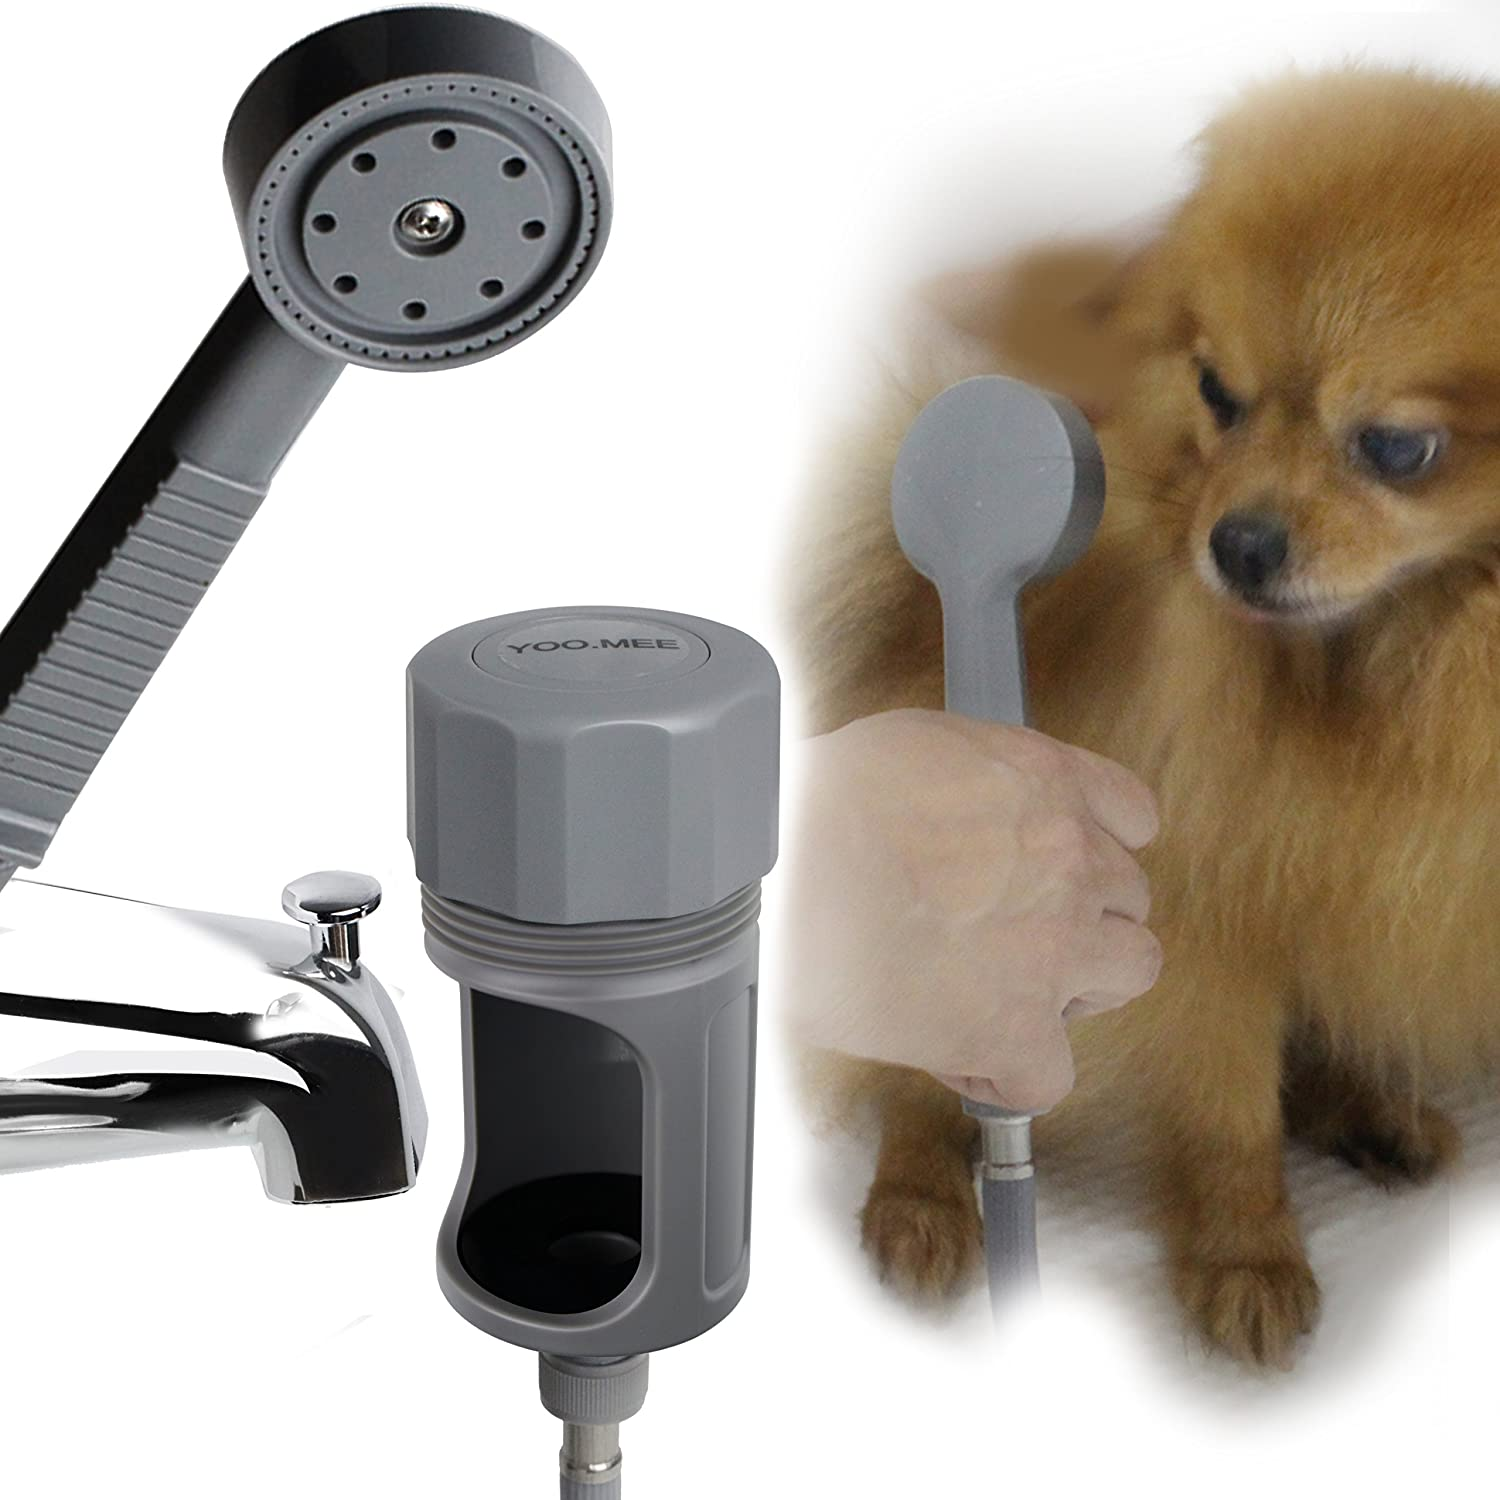 YOO.MEE Pets Shower Attachment for In Door/Out Door/Tub Spout Quick Connect, Easy and Fast Ideal for Bathing Child, Washing Pets and Cleaning Tub